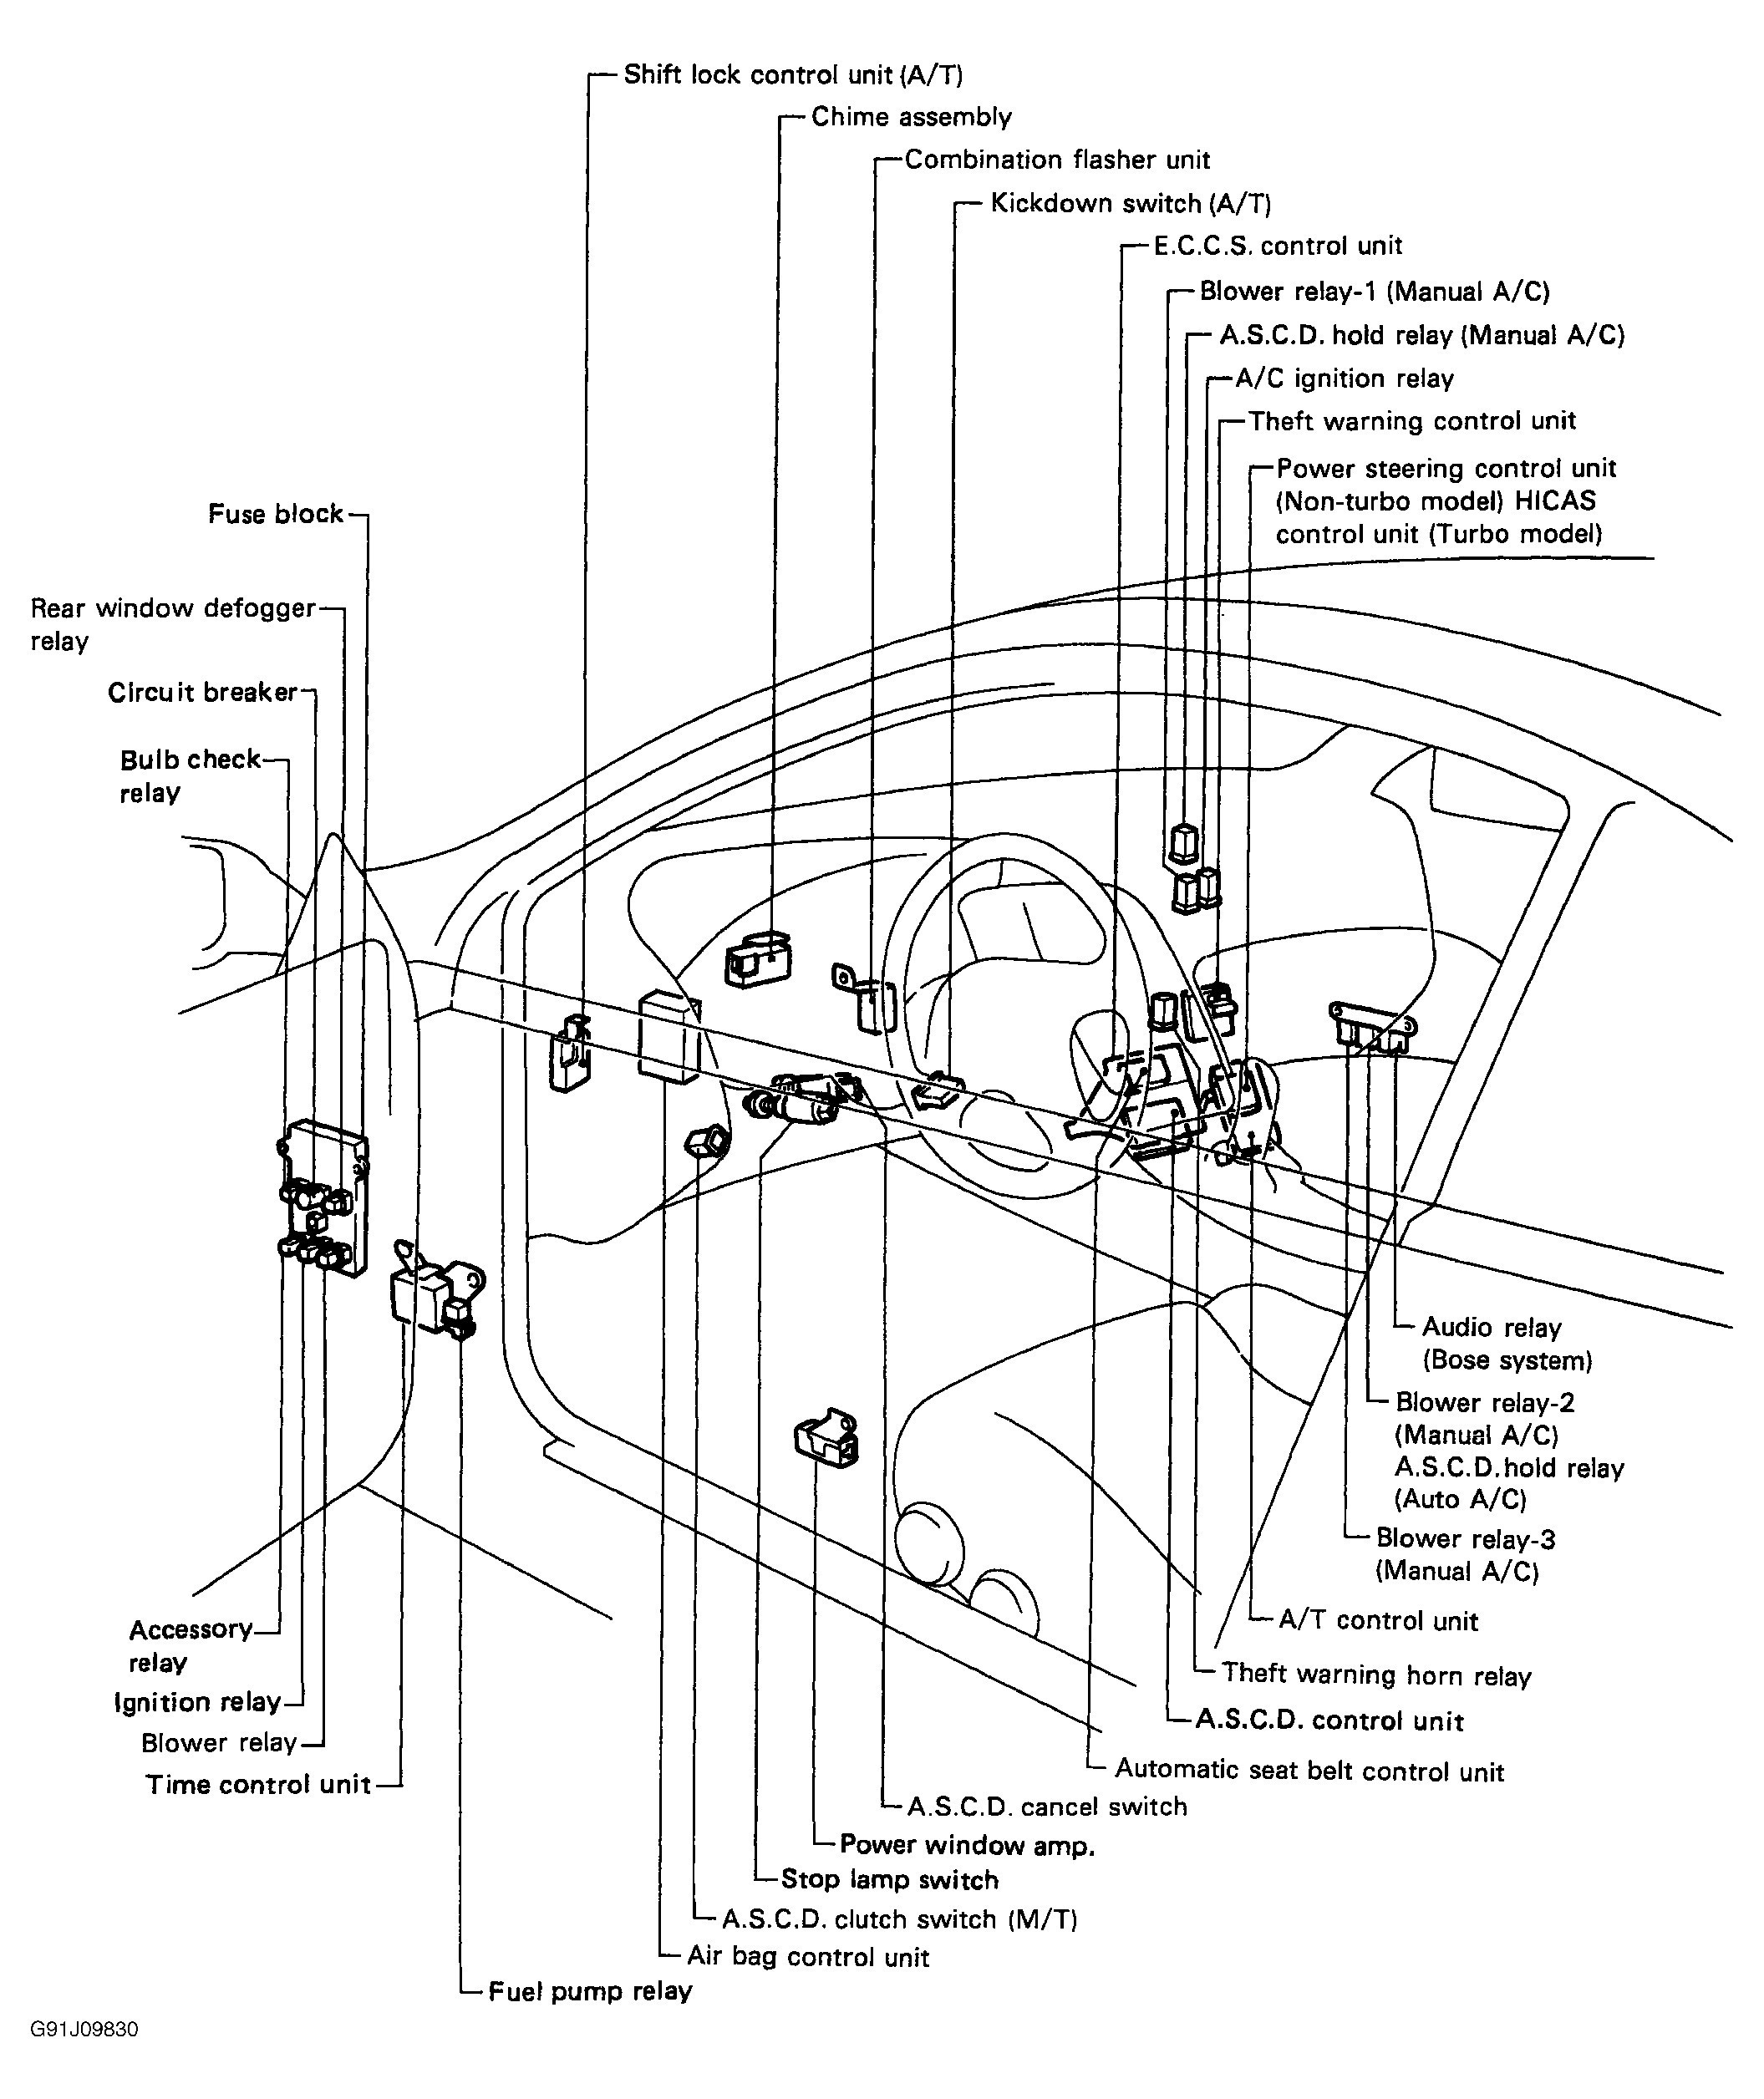 ford mustang wiring diagram on 93 nissan d21 wiring harness diagram